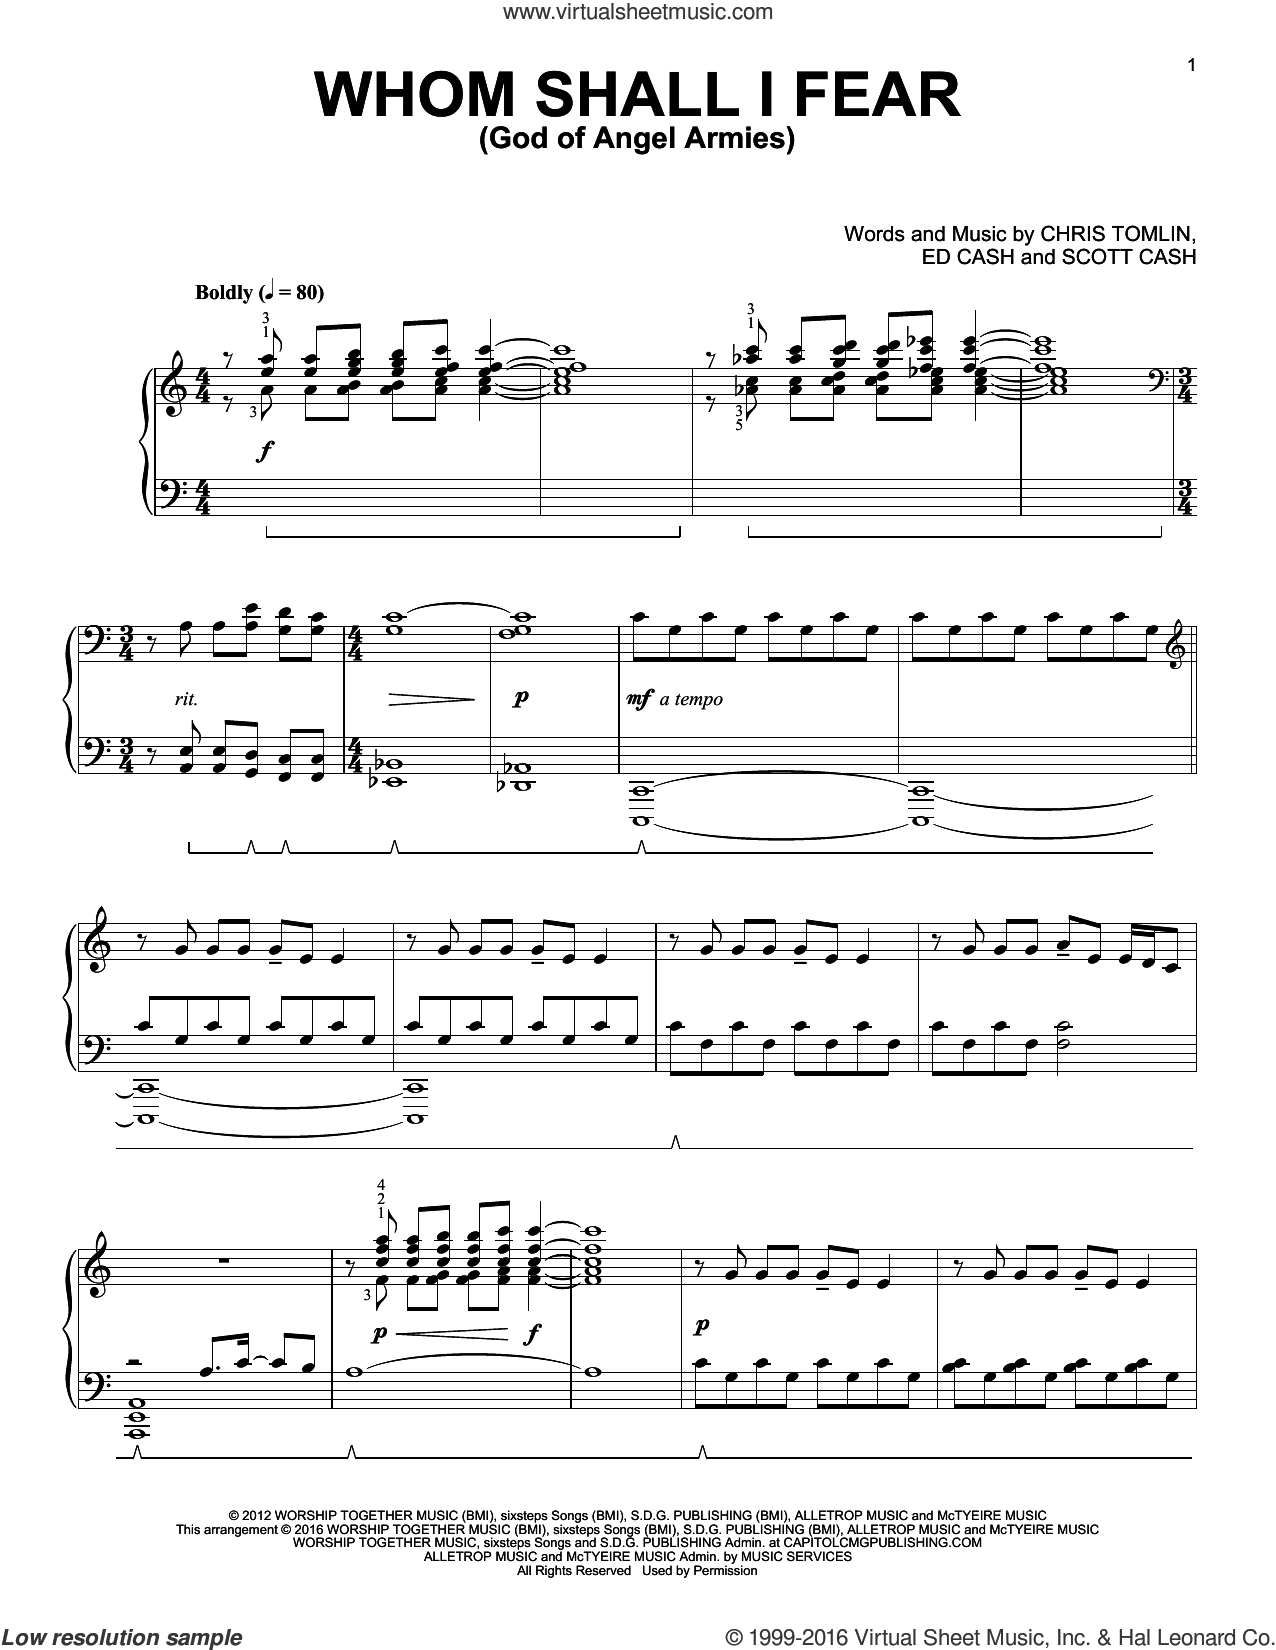 Whom Shall I Fear (God Of Angel Armies), (intermediate) sheet music for piano solo by Chris Tomlin, Phillip Keveren, Ed Cash and Scott Cash, intermediate skill level